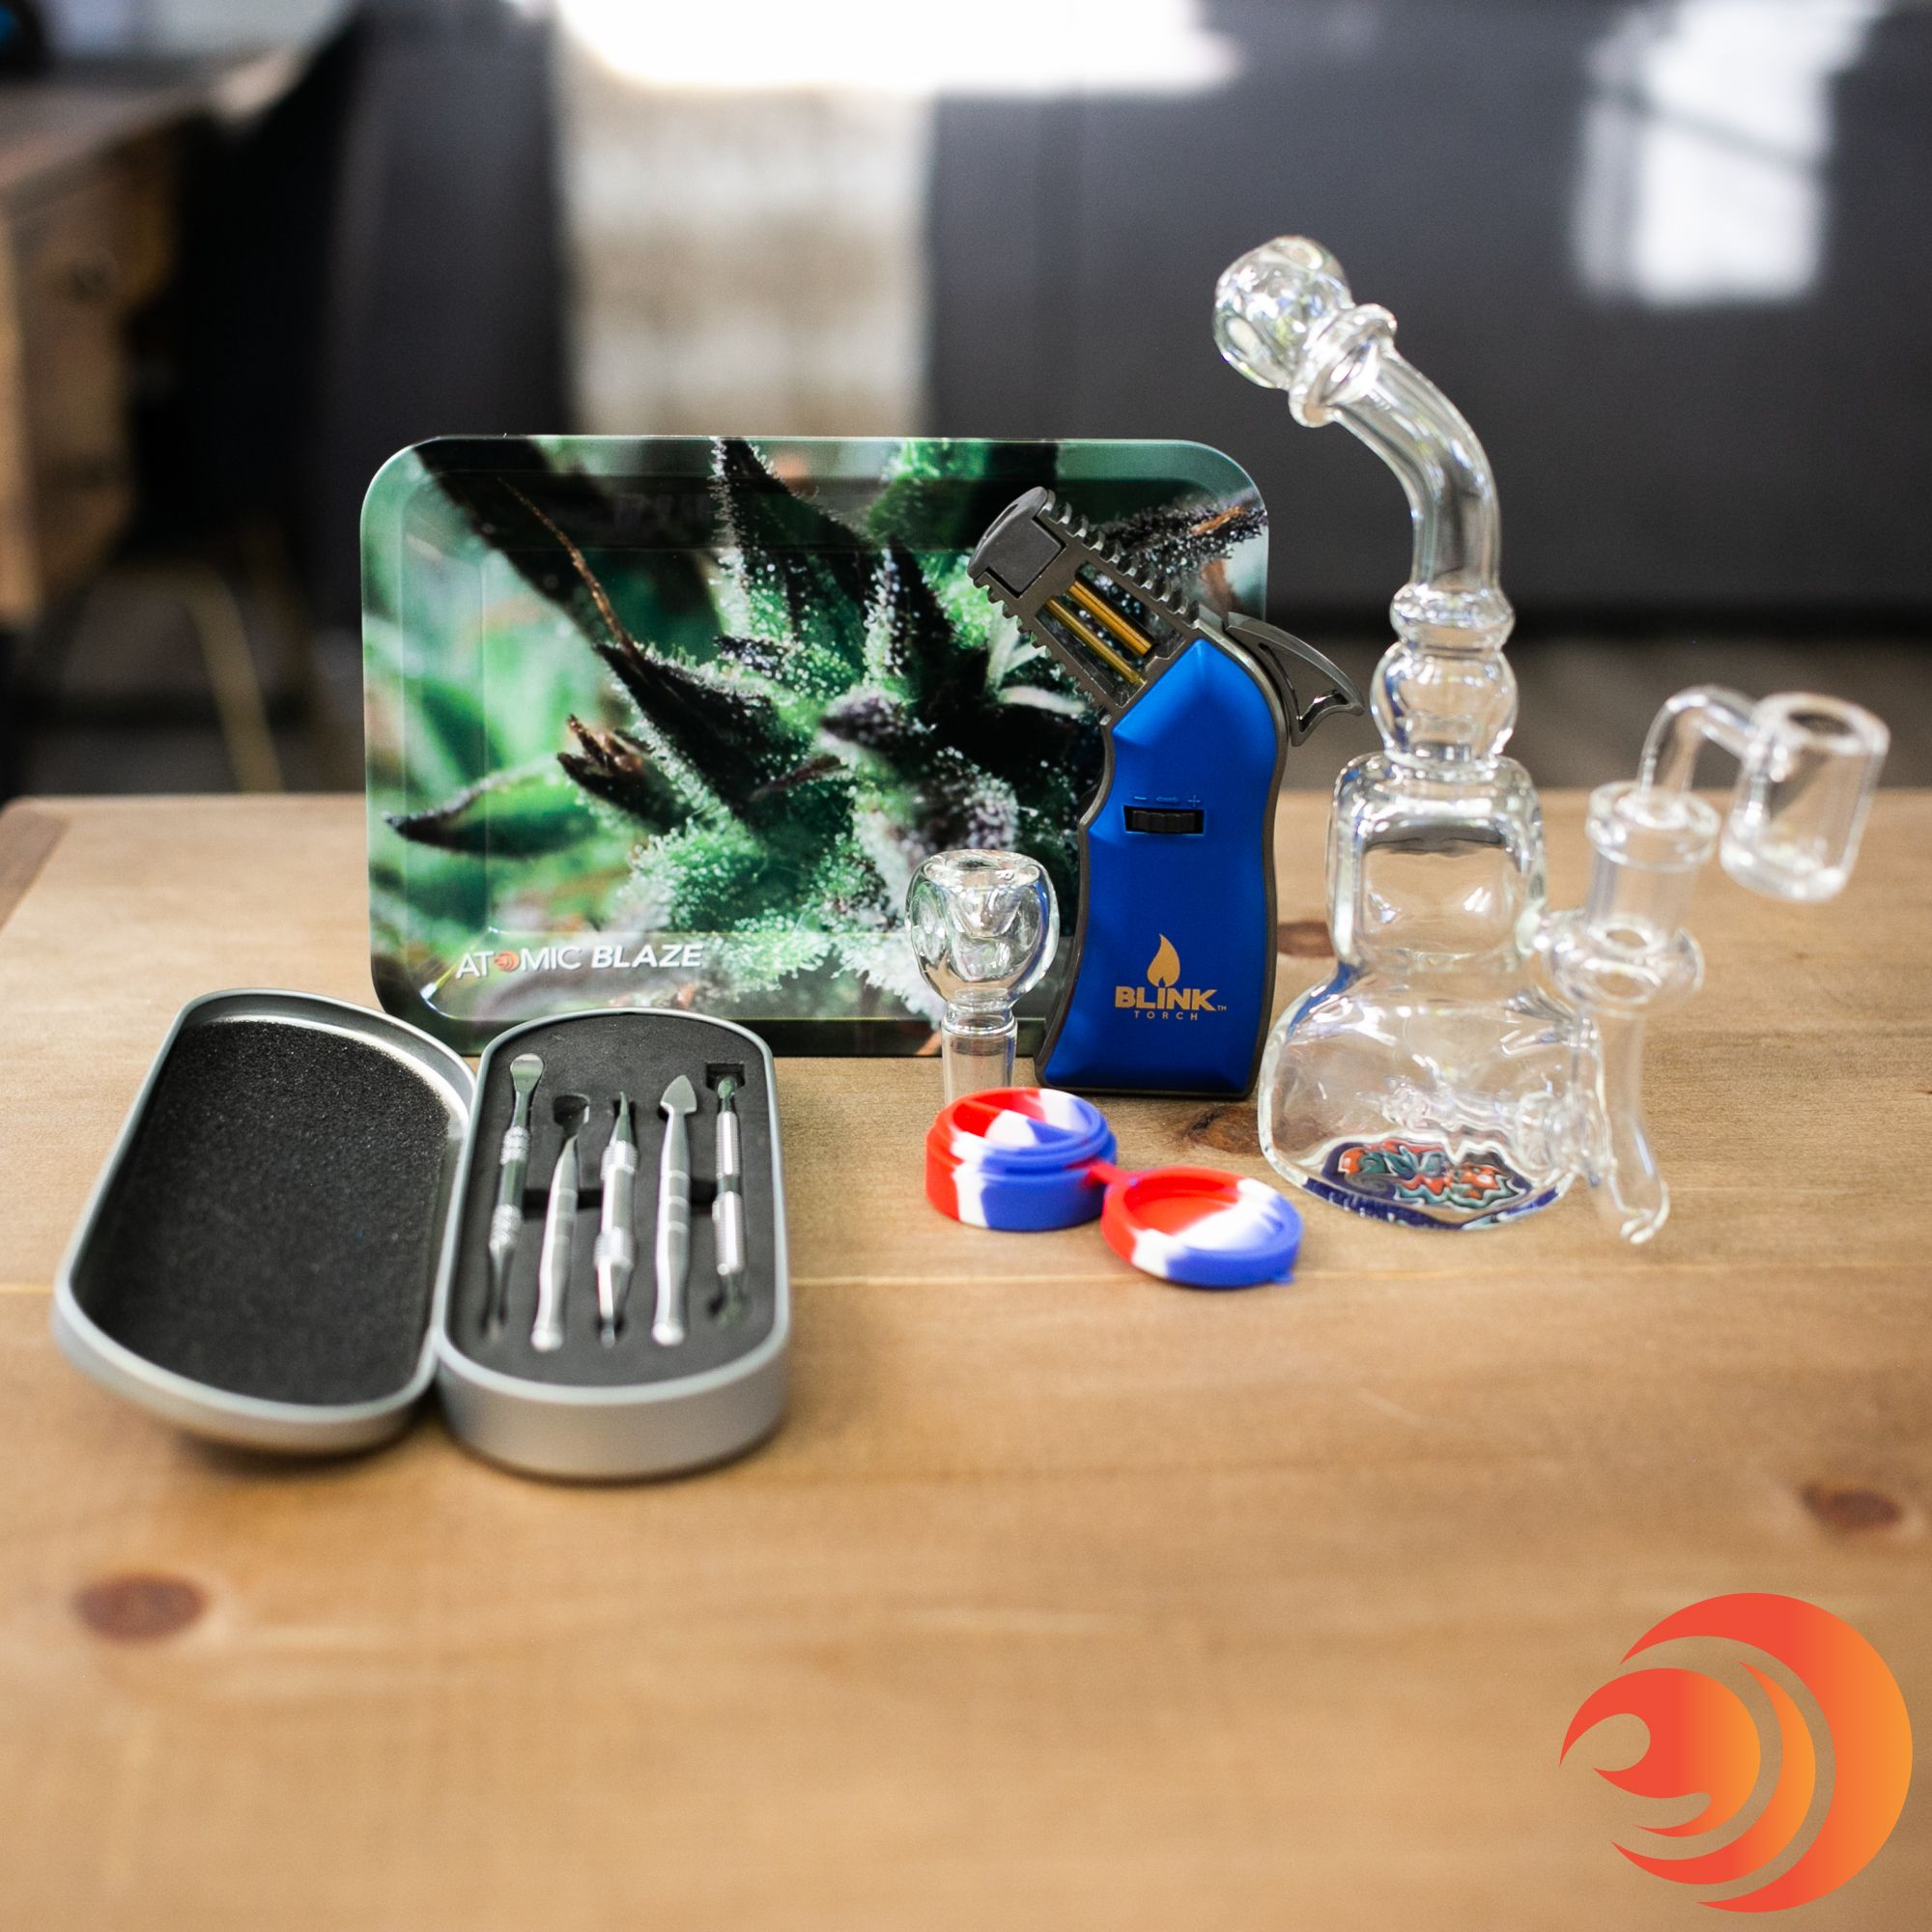 Buy a dab rig bundle from the Atomic Blaze head shop.